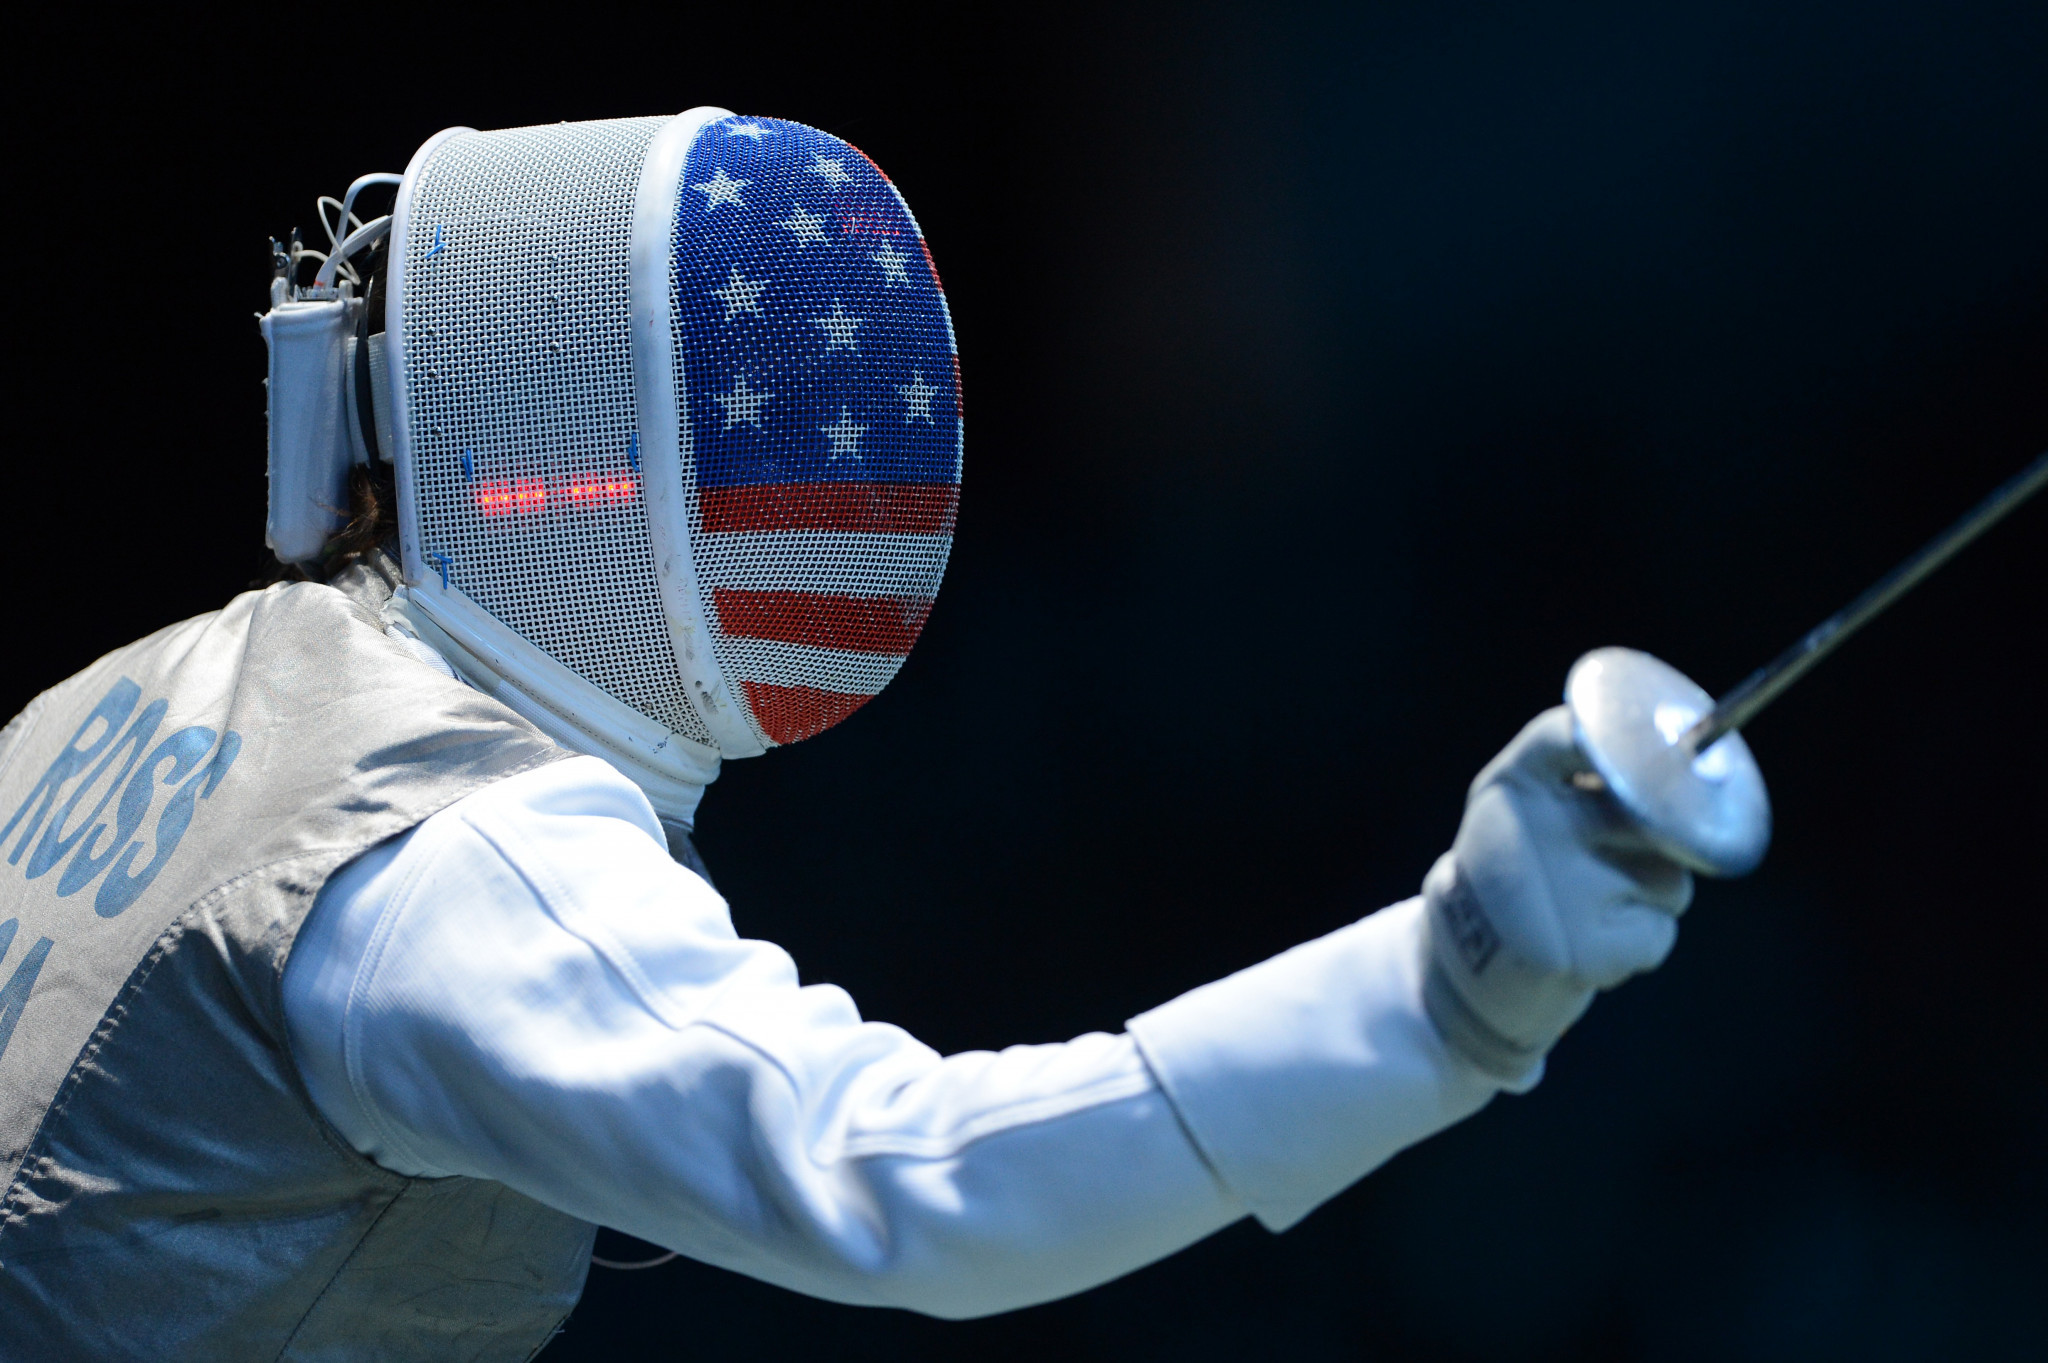 Nicole Ross held off a strong home challenge to claim the women's foil title ©Getty Images